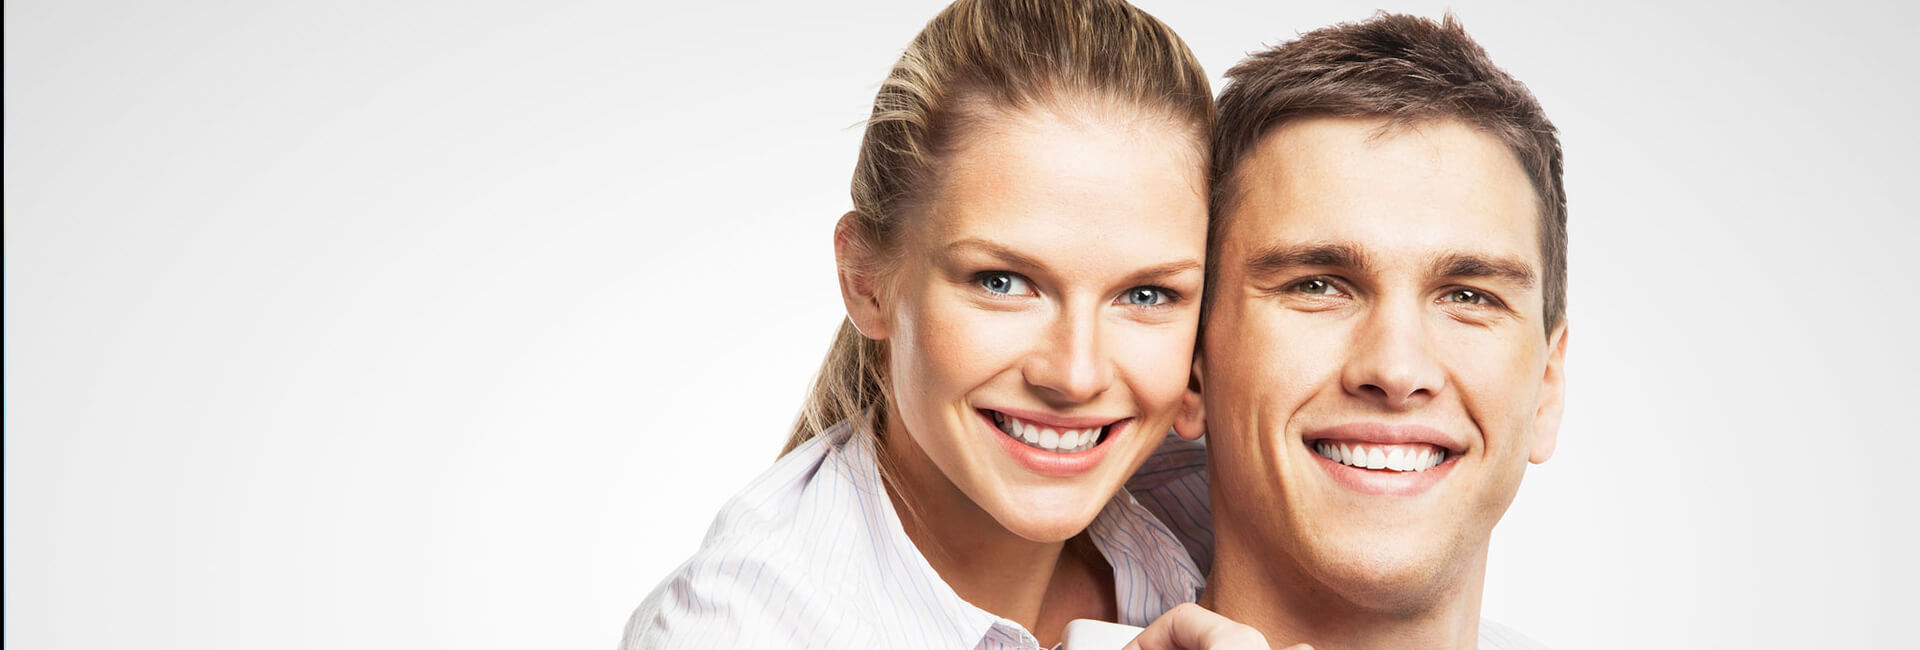 Young couple smiling showing white teeth embracing each other